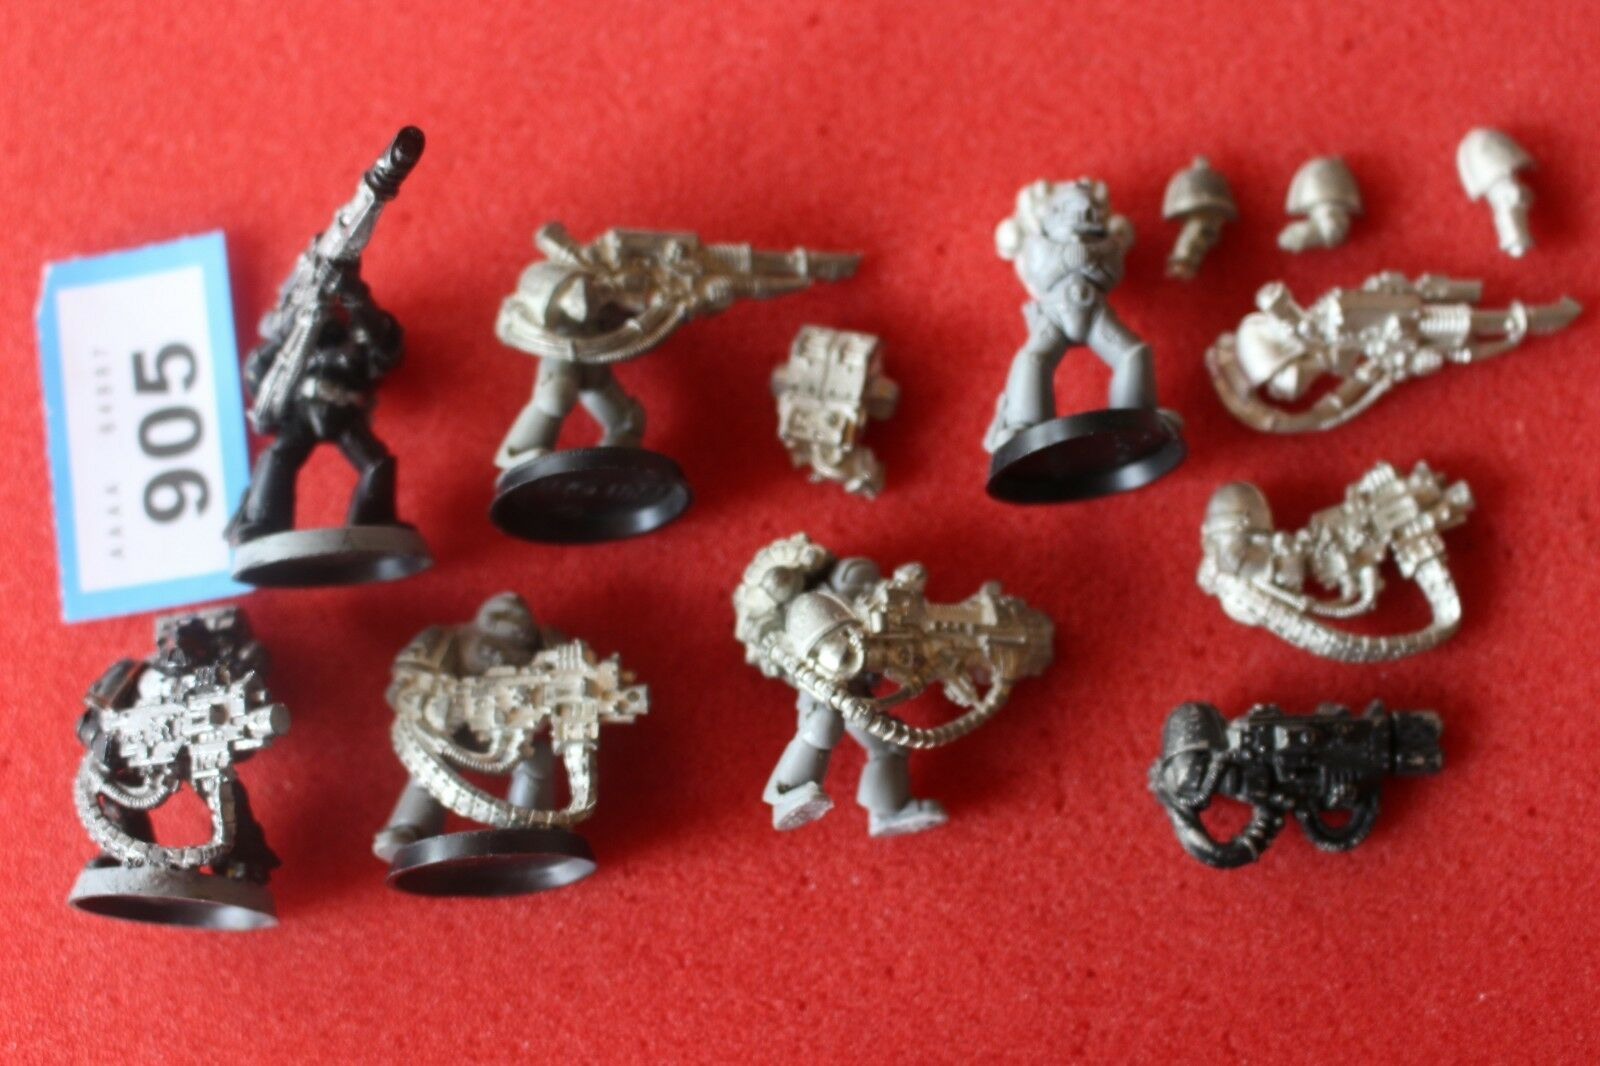 Spiele warhammer 40k space marines devestator - workshop teil metall - wh40k